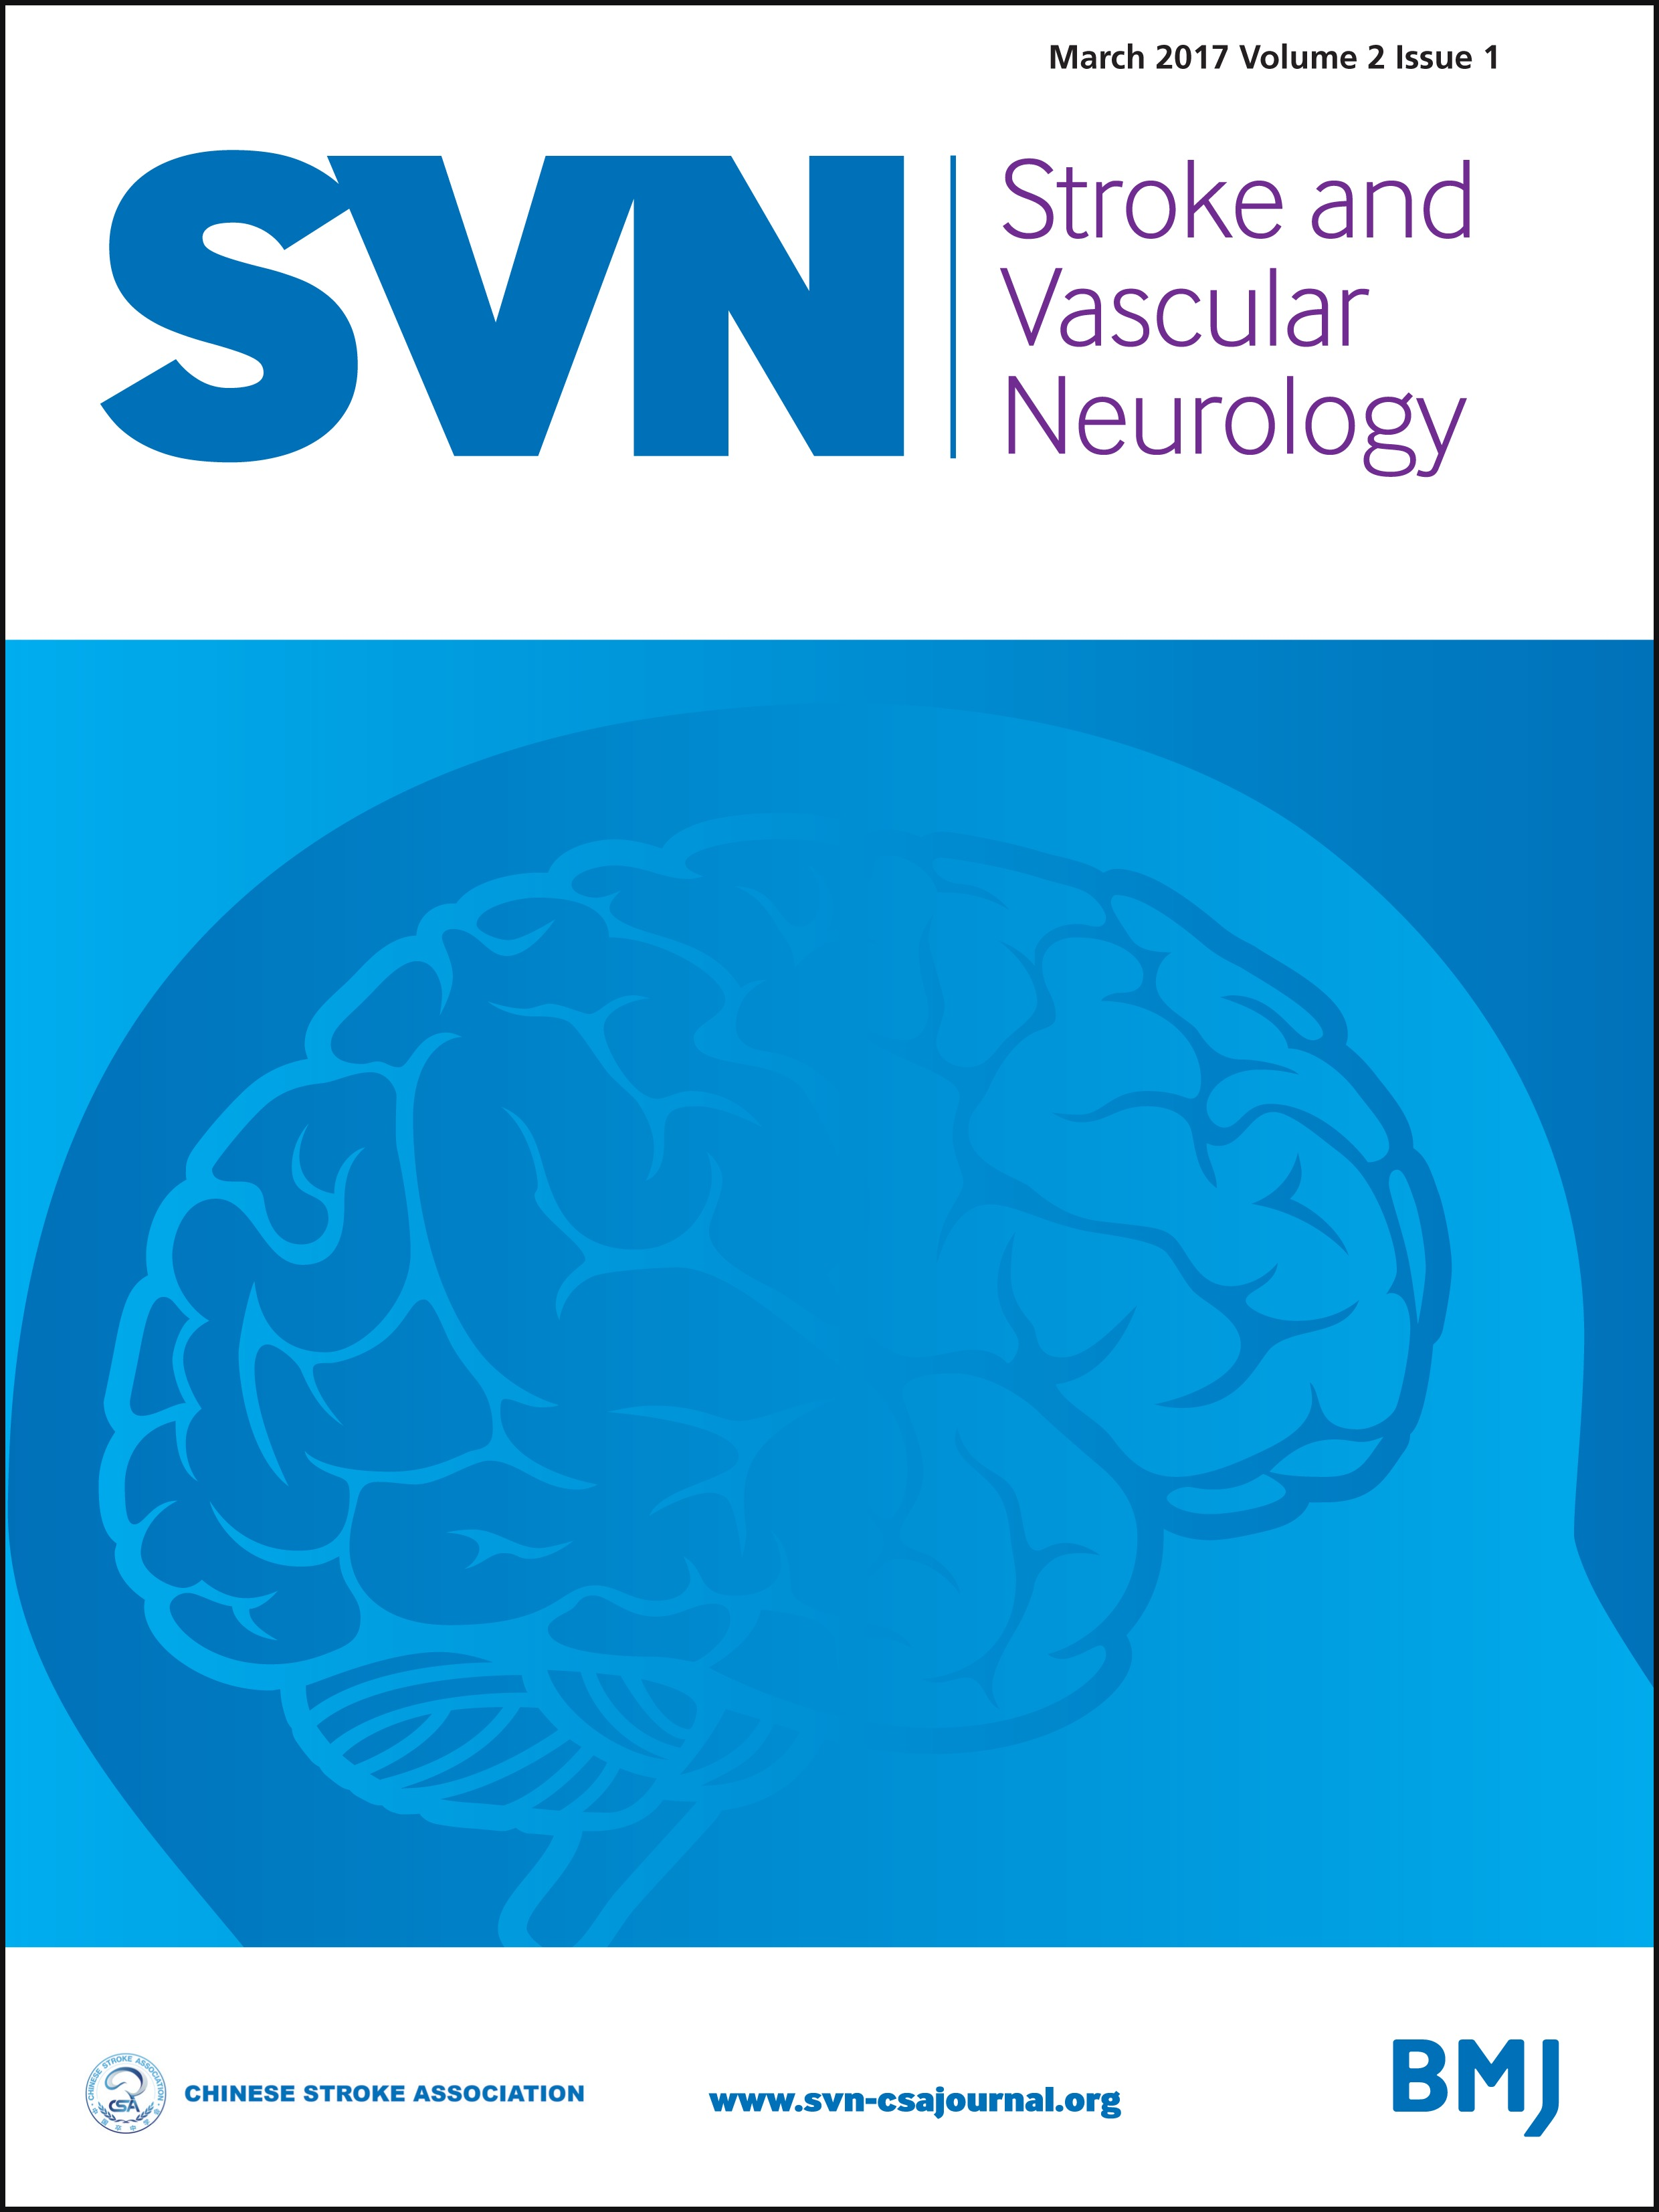 Current Management Of Spontaneous Intracerebral Haemorrhage Stroke Ccvs Controlled Voltage Source In Practice Electrical And Vascular Neurology